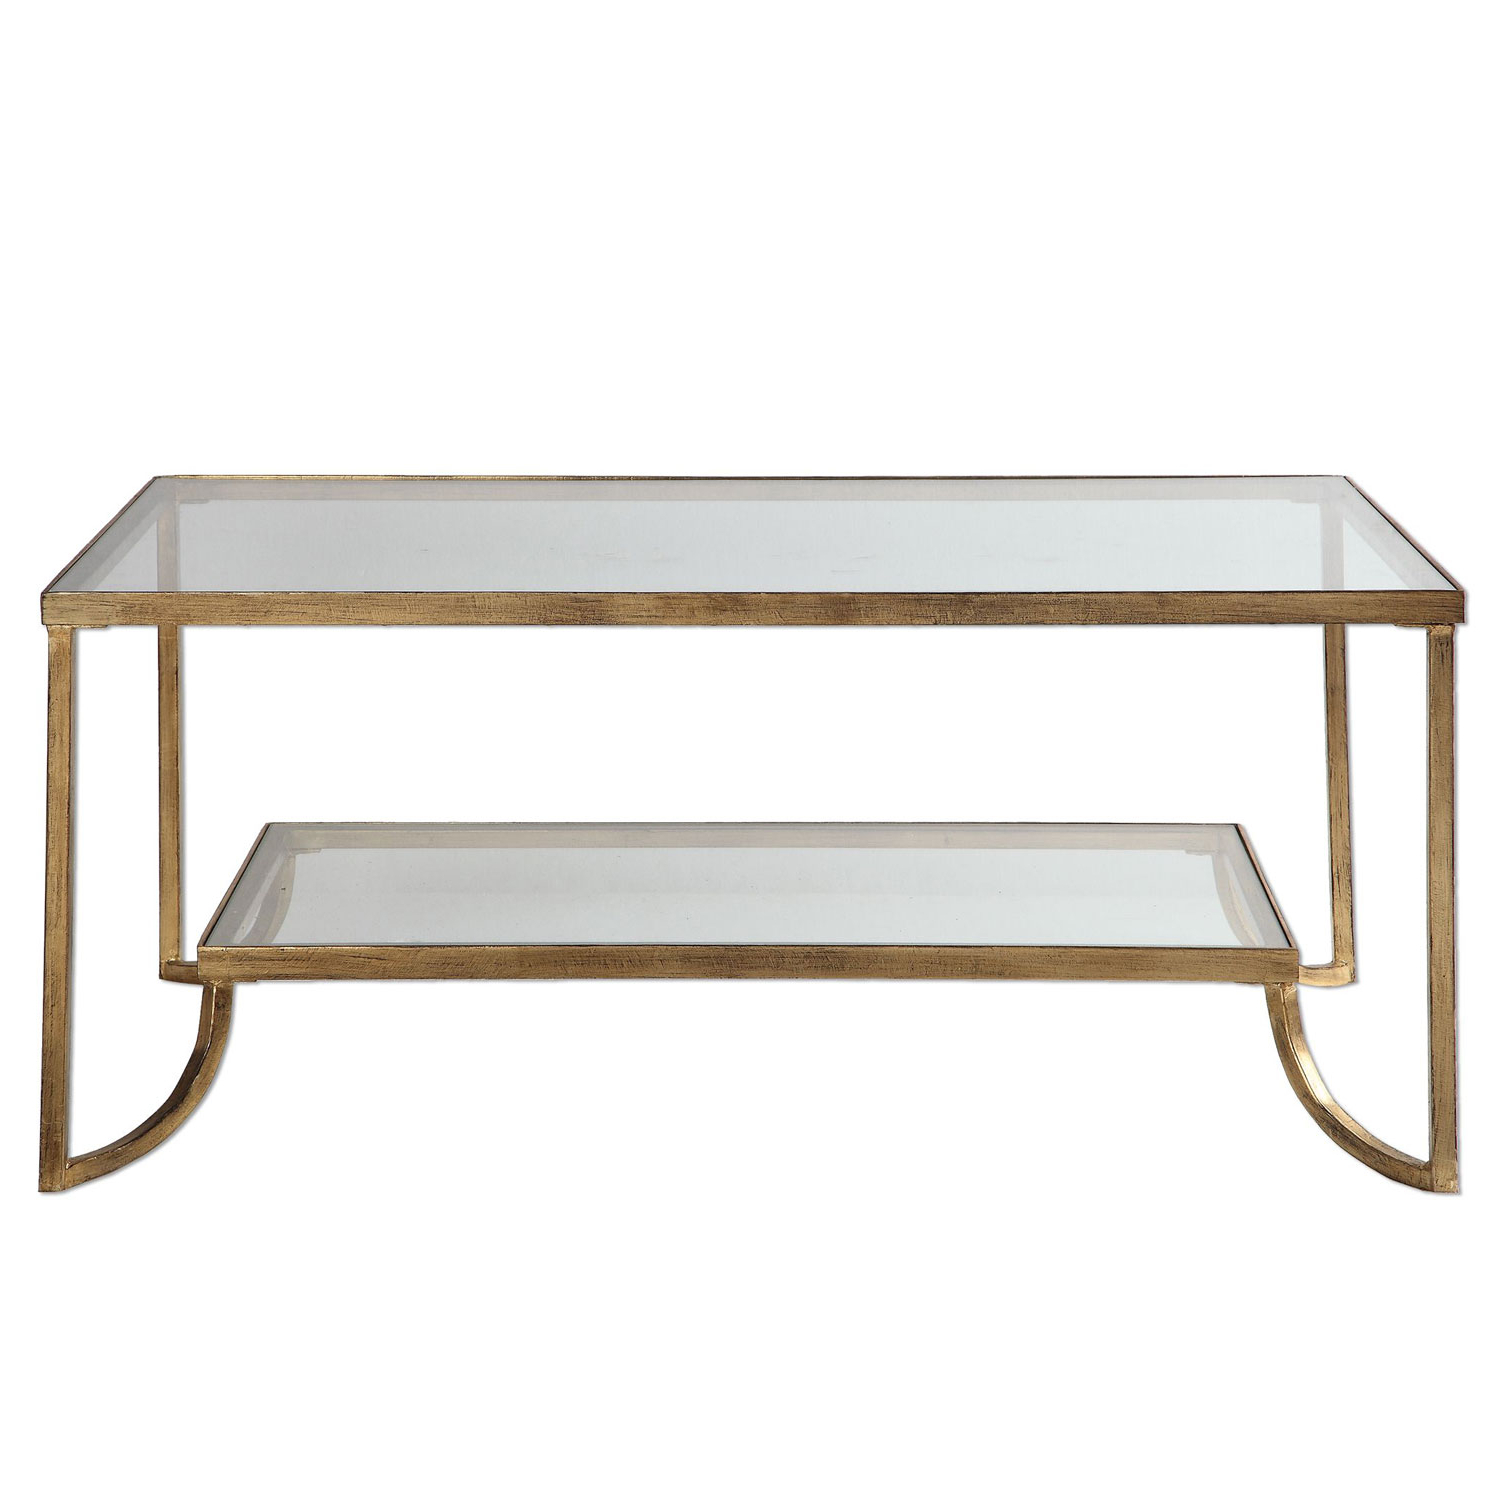 Gold Leaf Collection Coffee Tables Within 2019 Uttermost Katina Gold Leaf Coffee Table 24540 (Gallery 1 of 20)